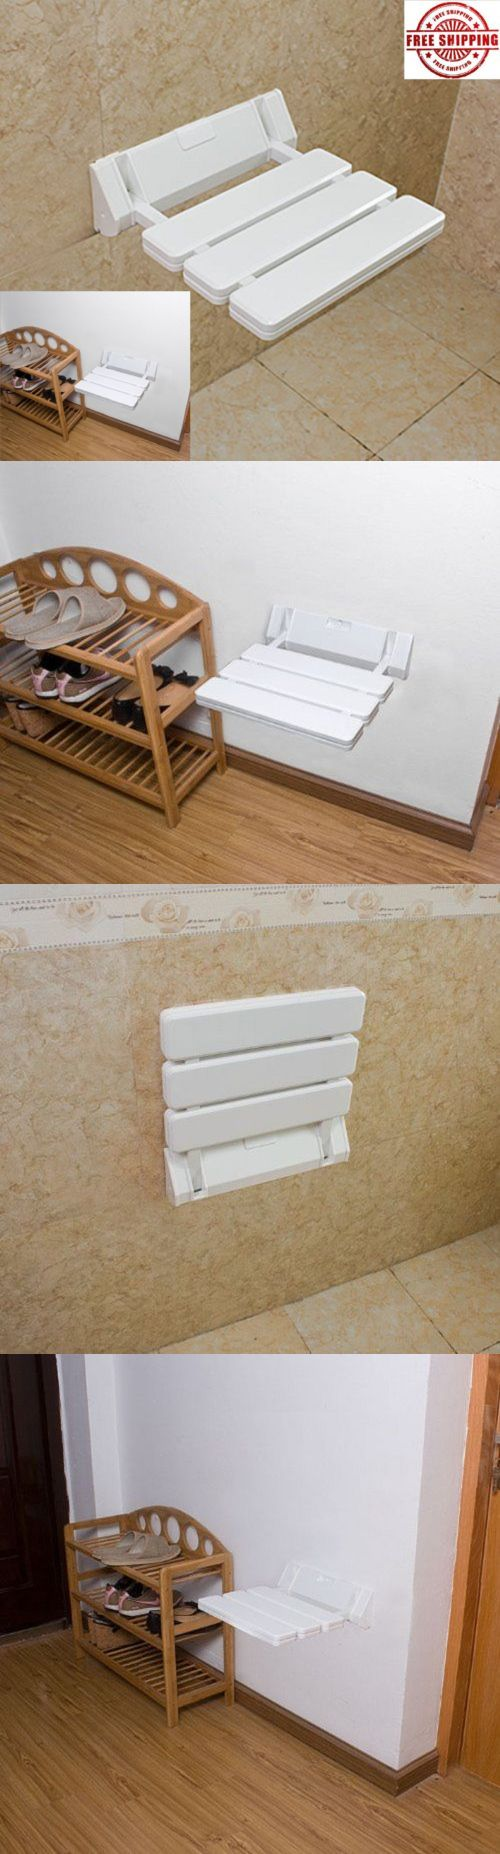 best 25 shower stools ideas on pinterest shower seat shower shower and bath seats shower stool bath shower bench folding seat medical bathroom chair wall